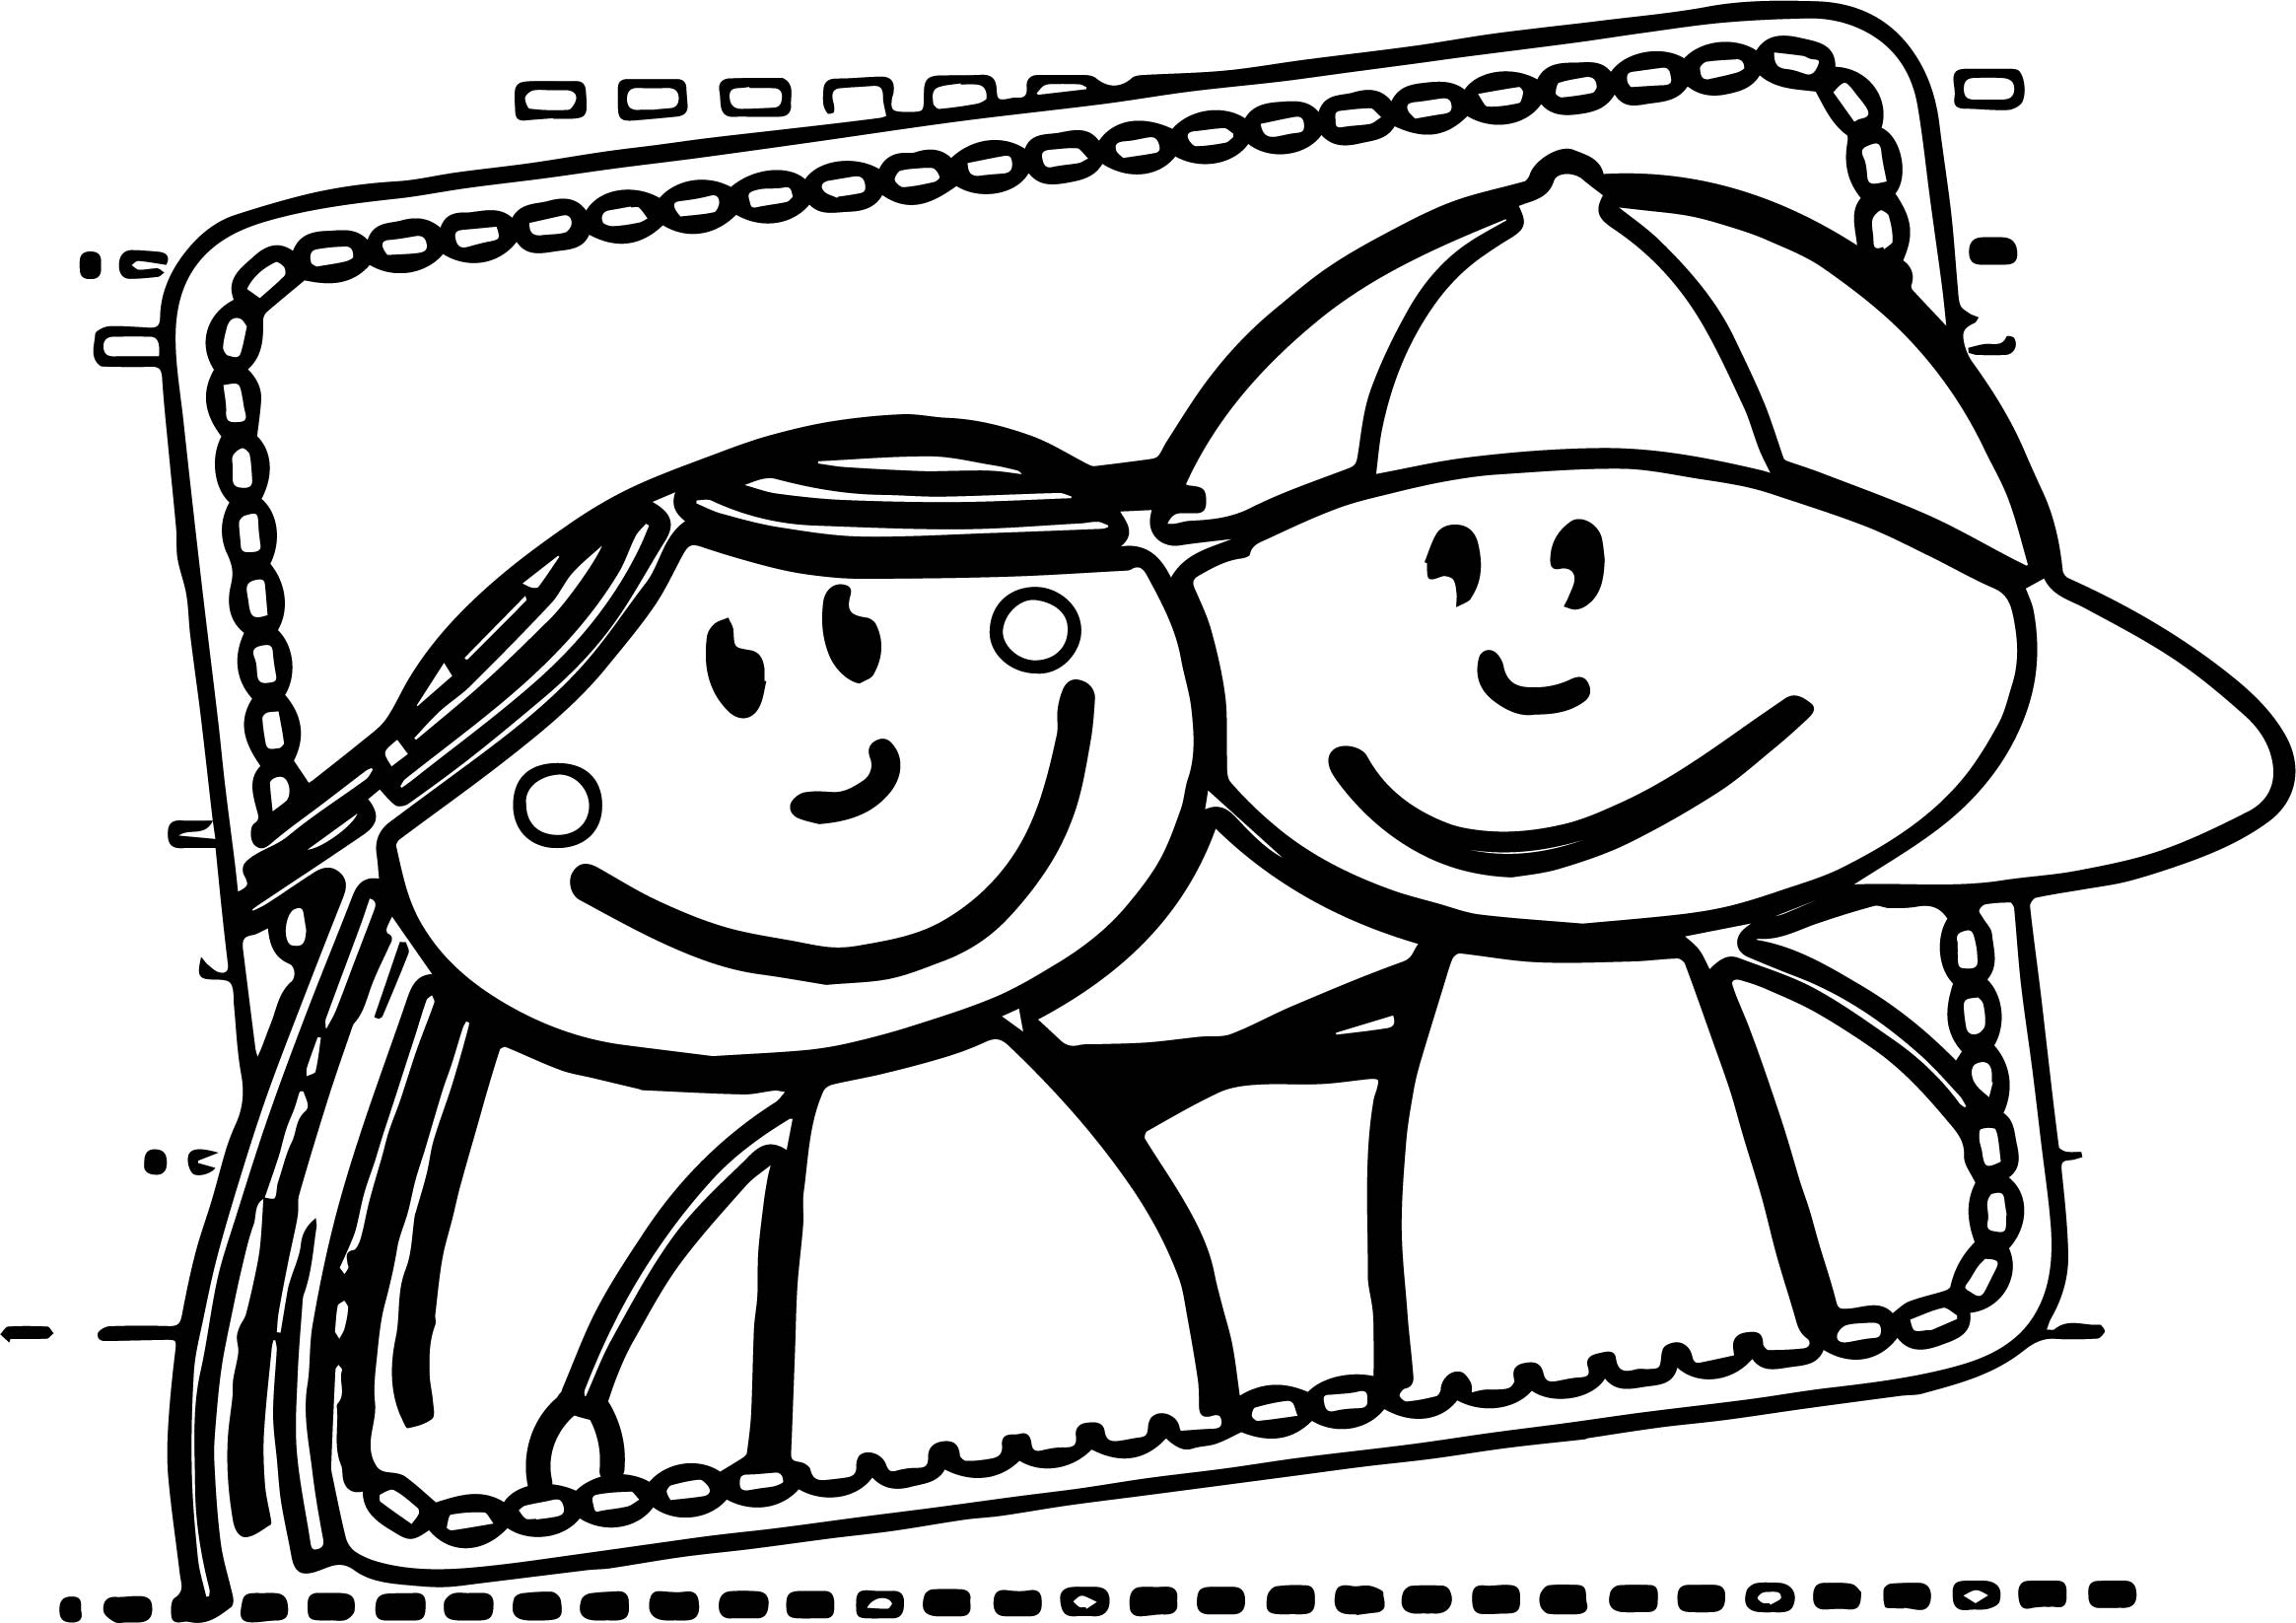 best friend coloring pictures best friend coloring pages to download and print for free pictures best friend coloring